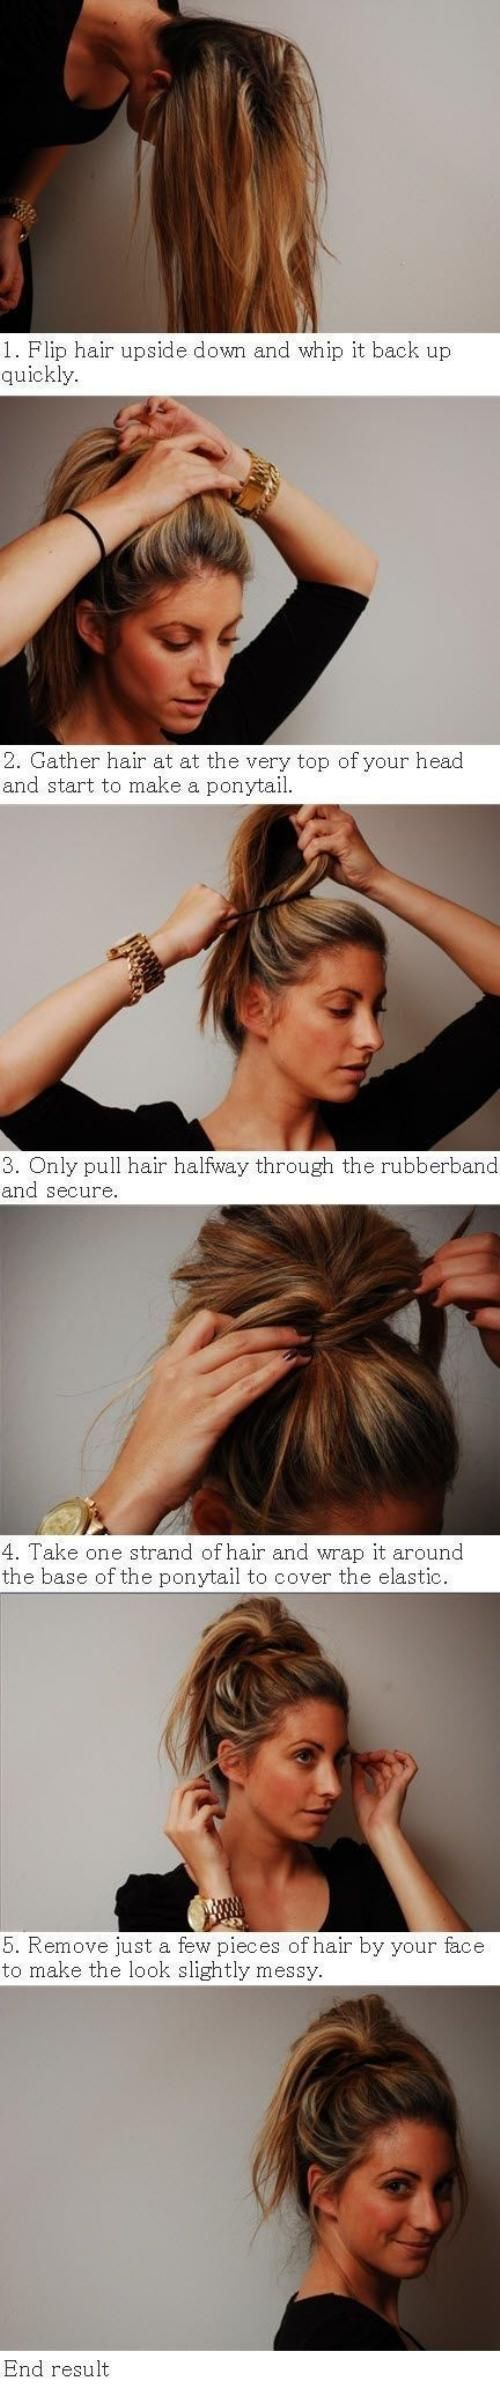 For when my hair gets long enough... Do it yourself hair-styles